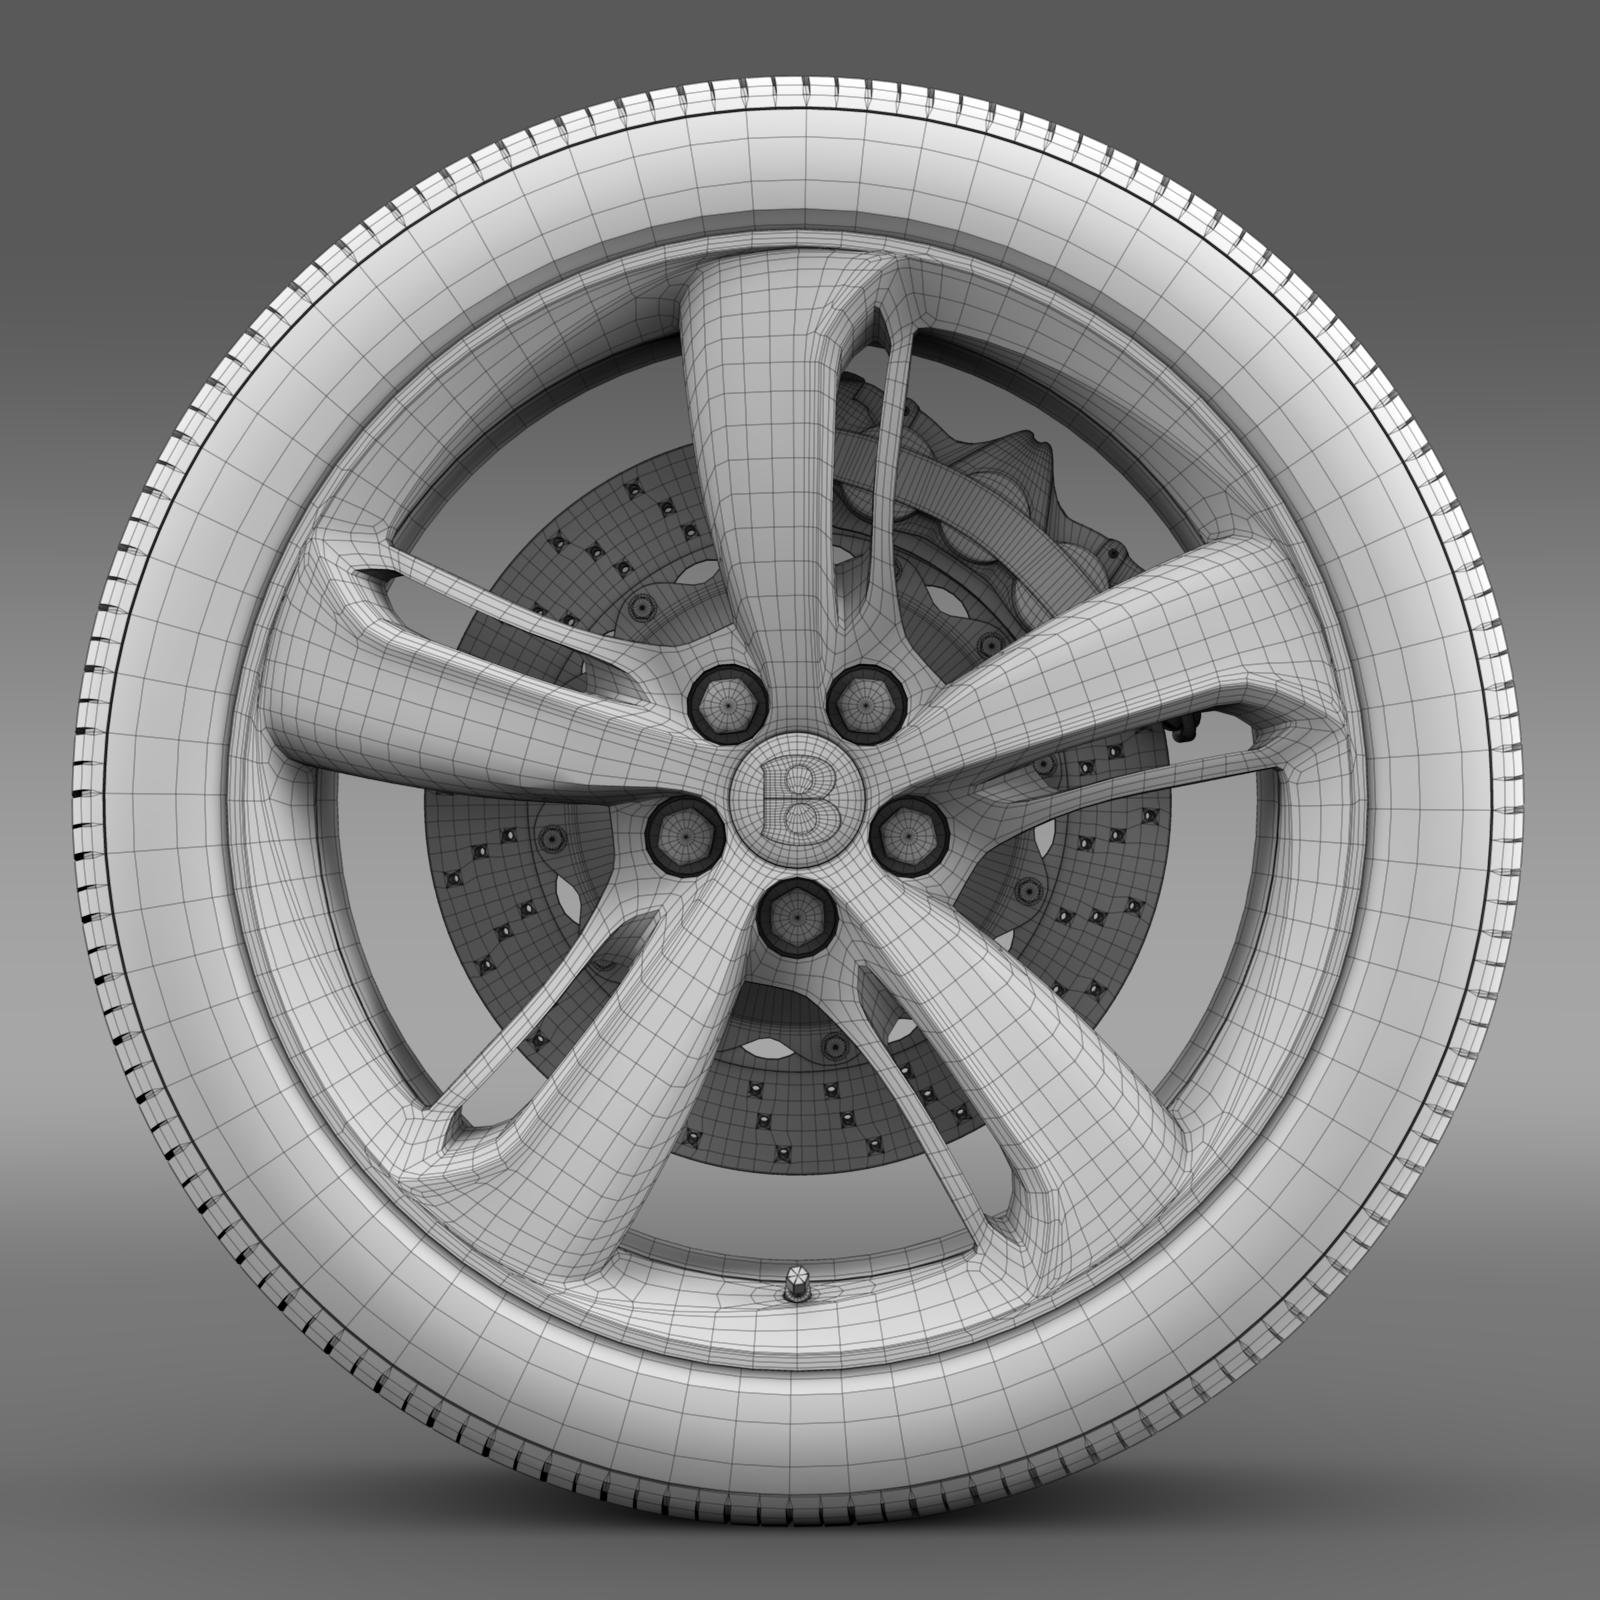 bentley continental gt speed 2015 wheel 3d model 3ds max fbx c4d lwo ma mb hrc xsi obj 210588